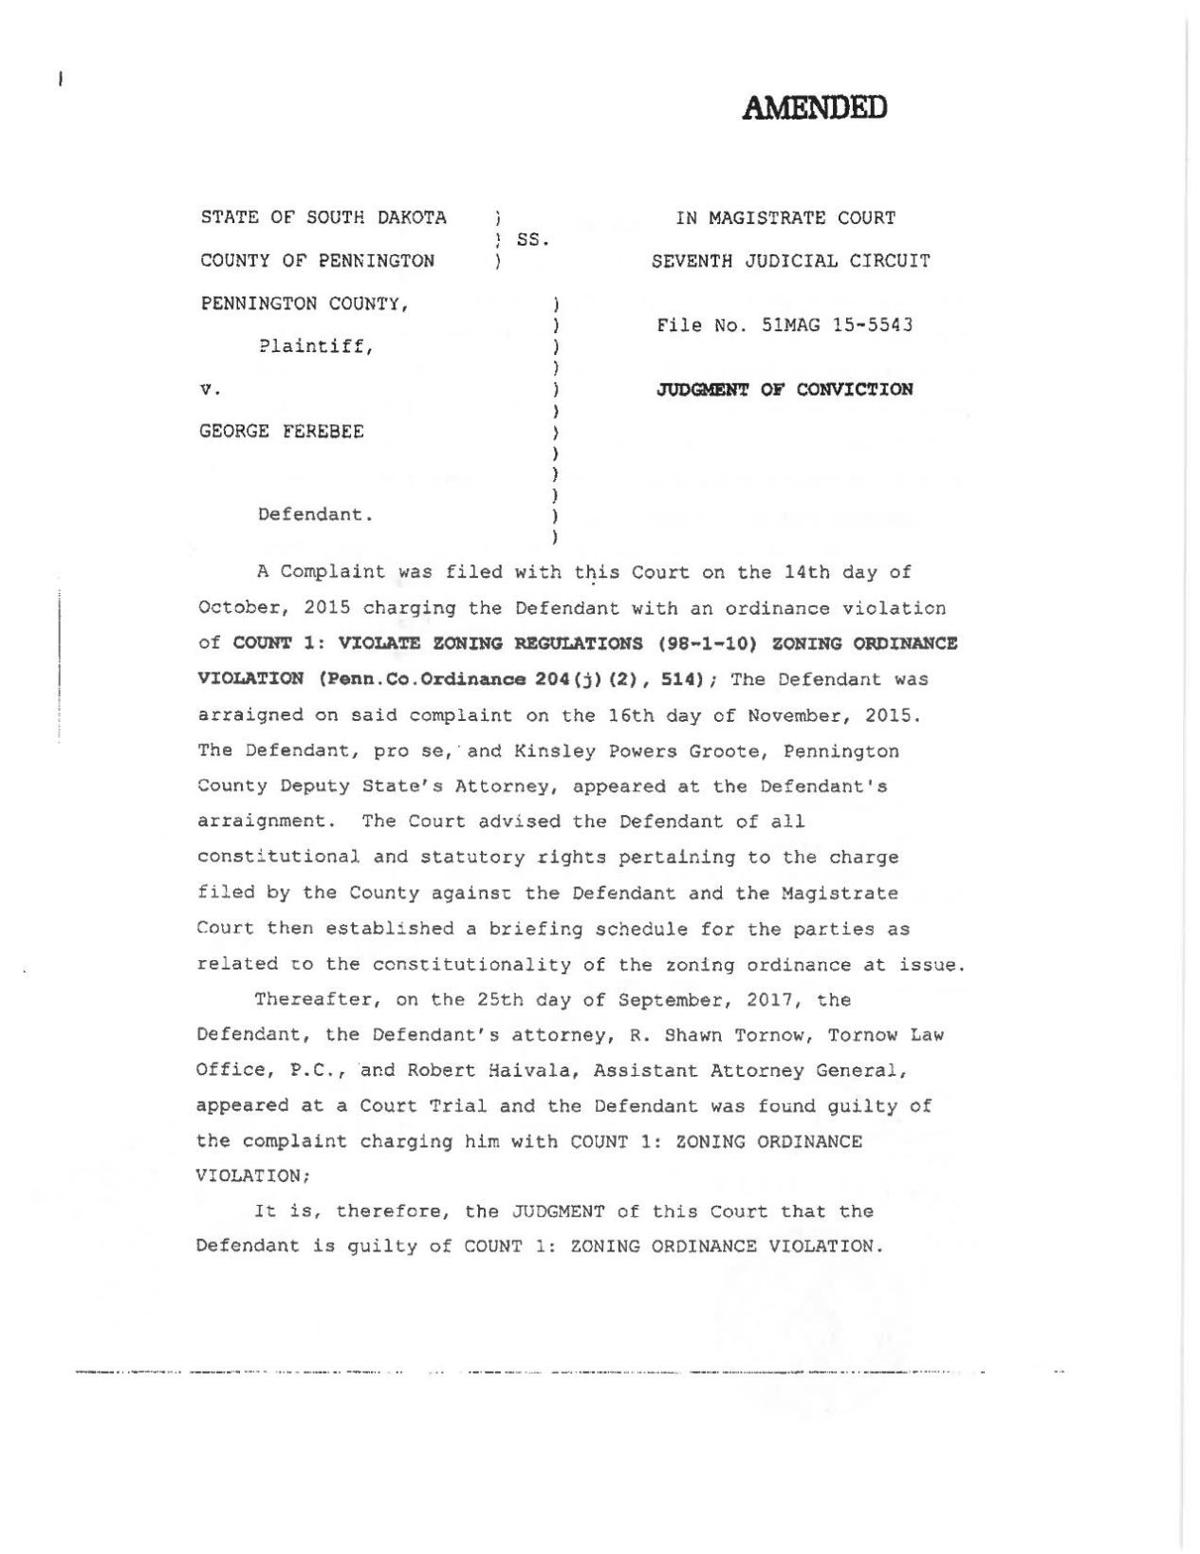 Pennington County v. George Ferebee - amended judgment of conviction